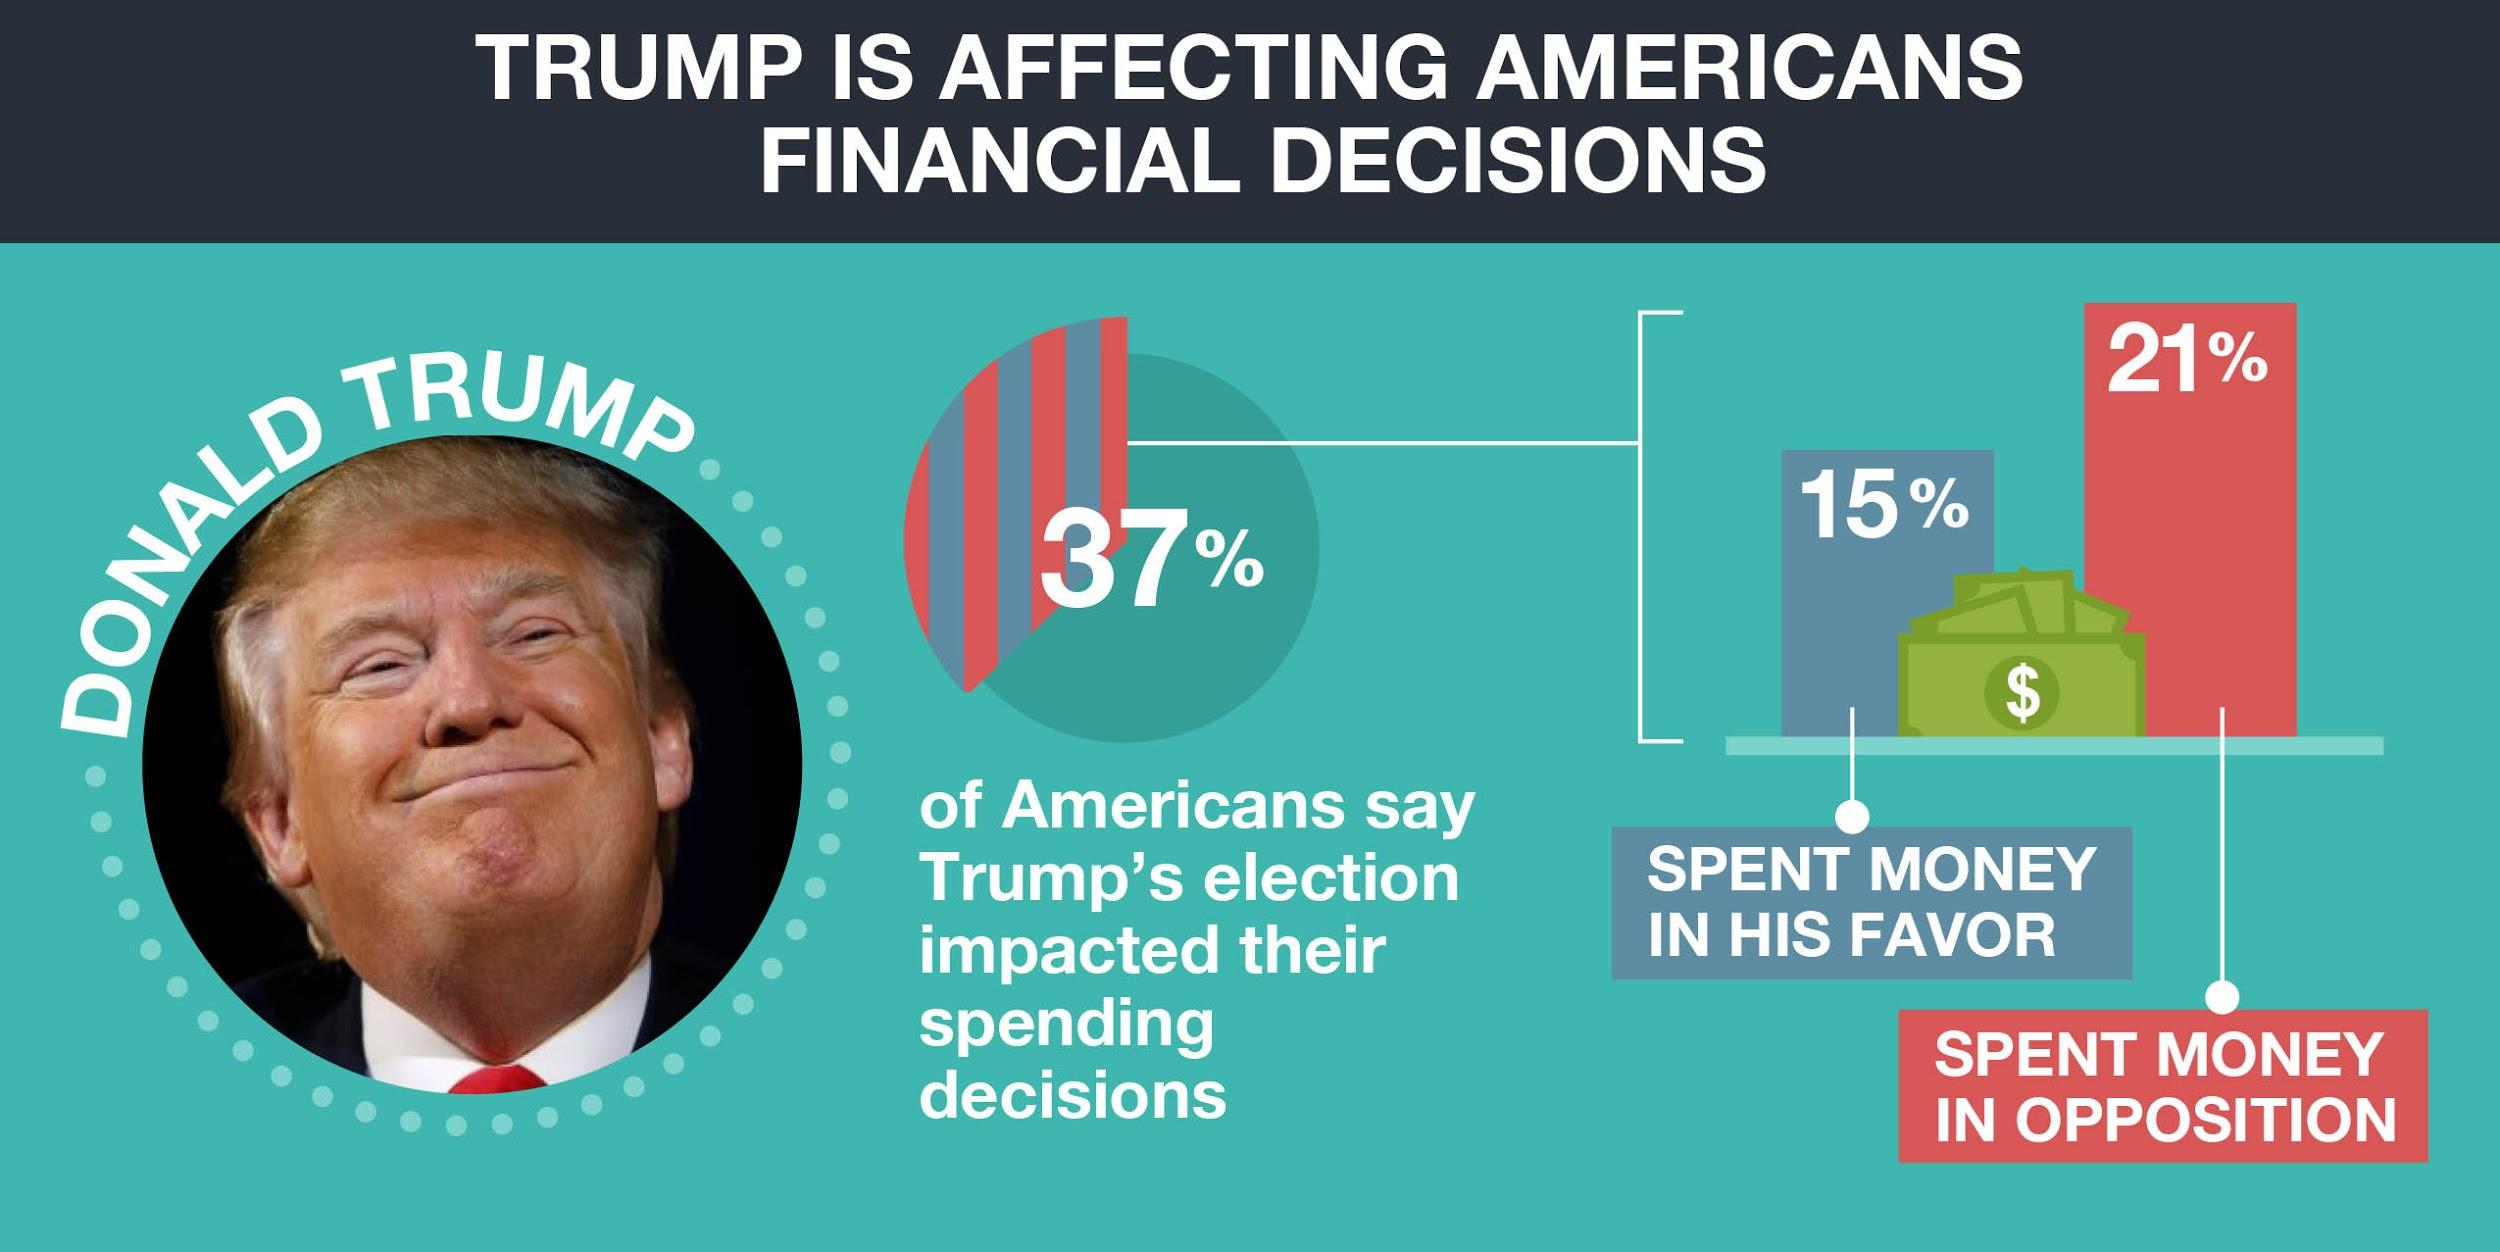 Trumps effect on Americans financial decisions